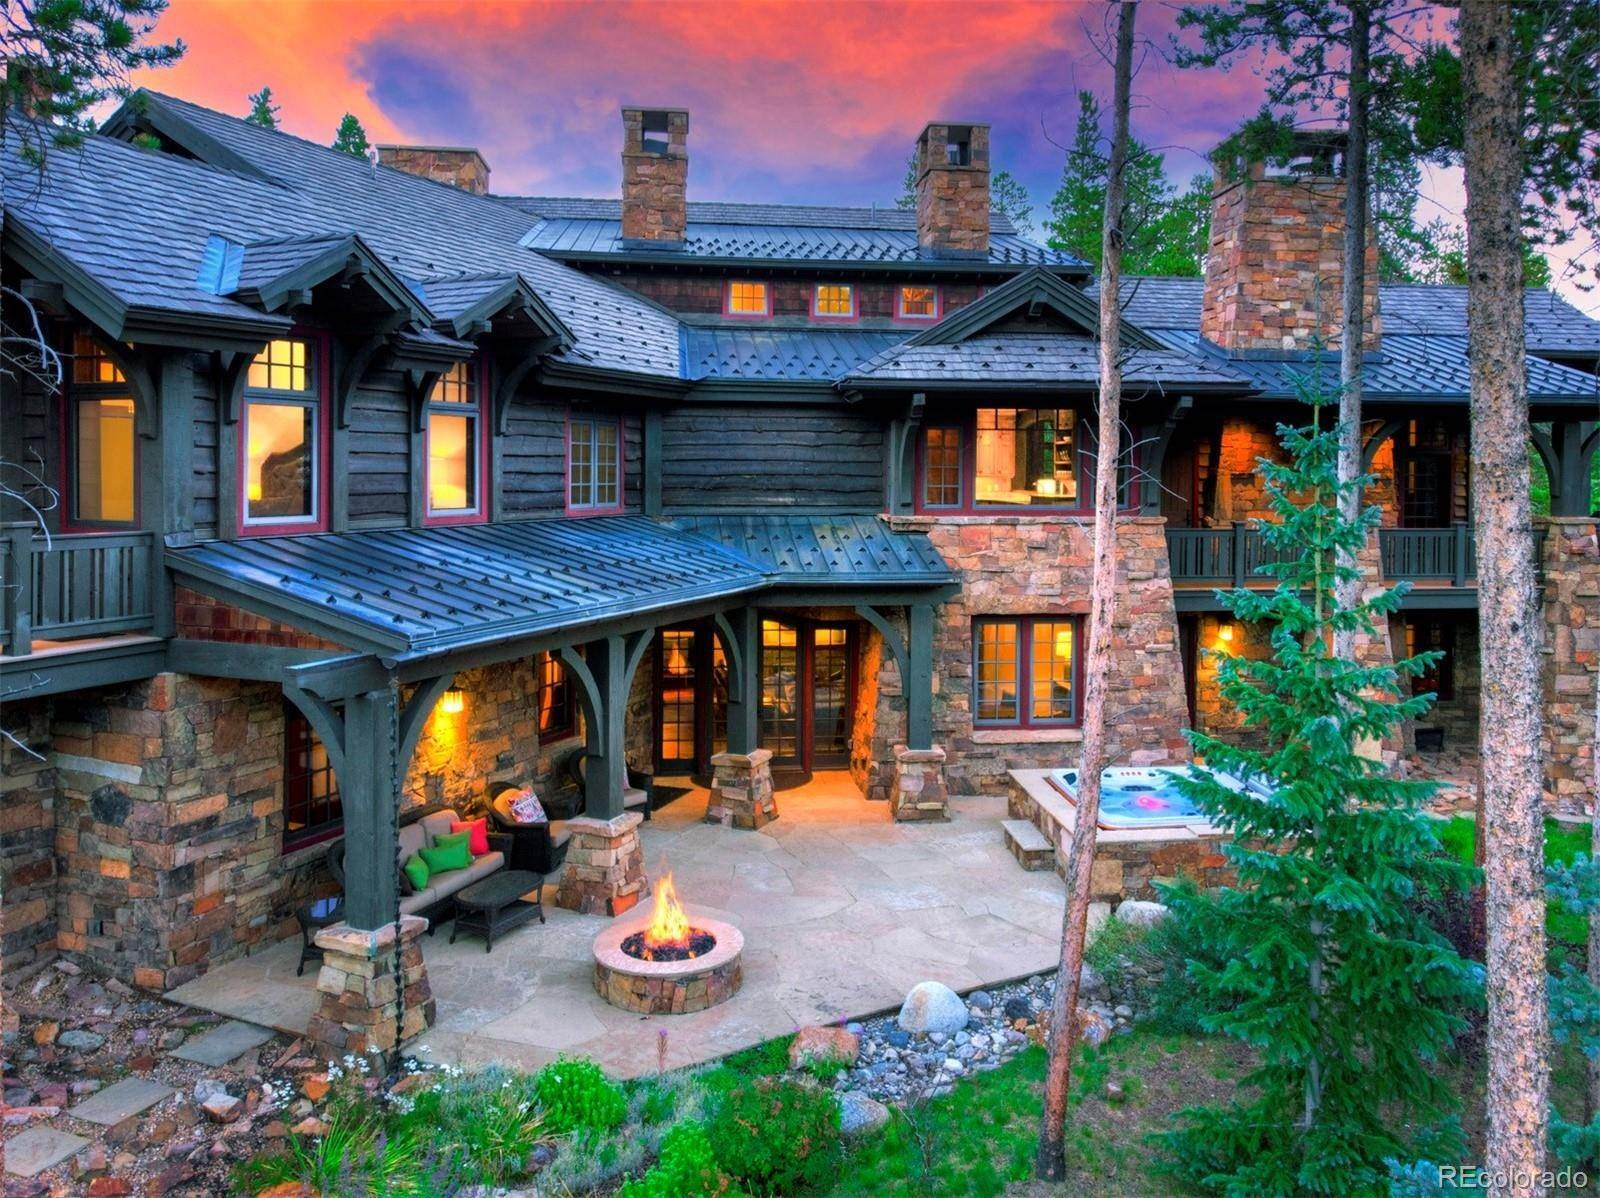 Single Family Homes for Sale at 33 Iron Mask Road Breckenridge, Colorado 80424 United States